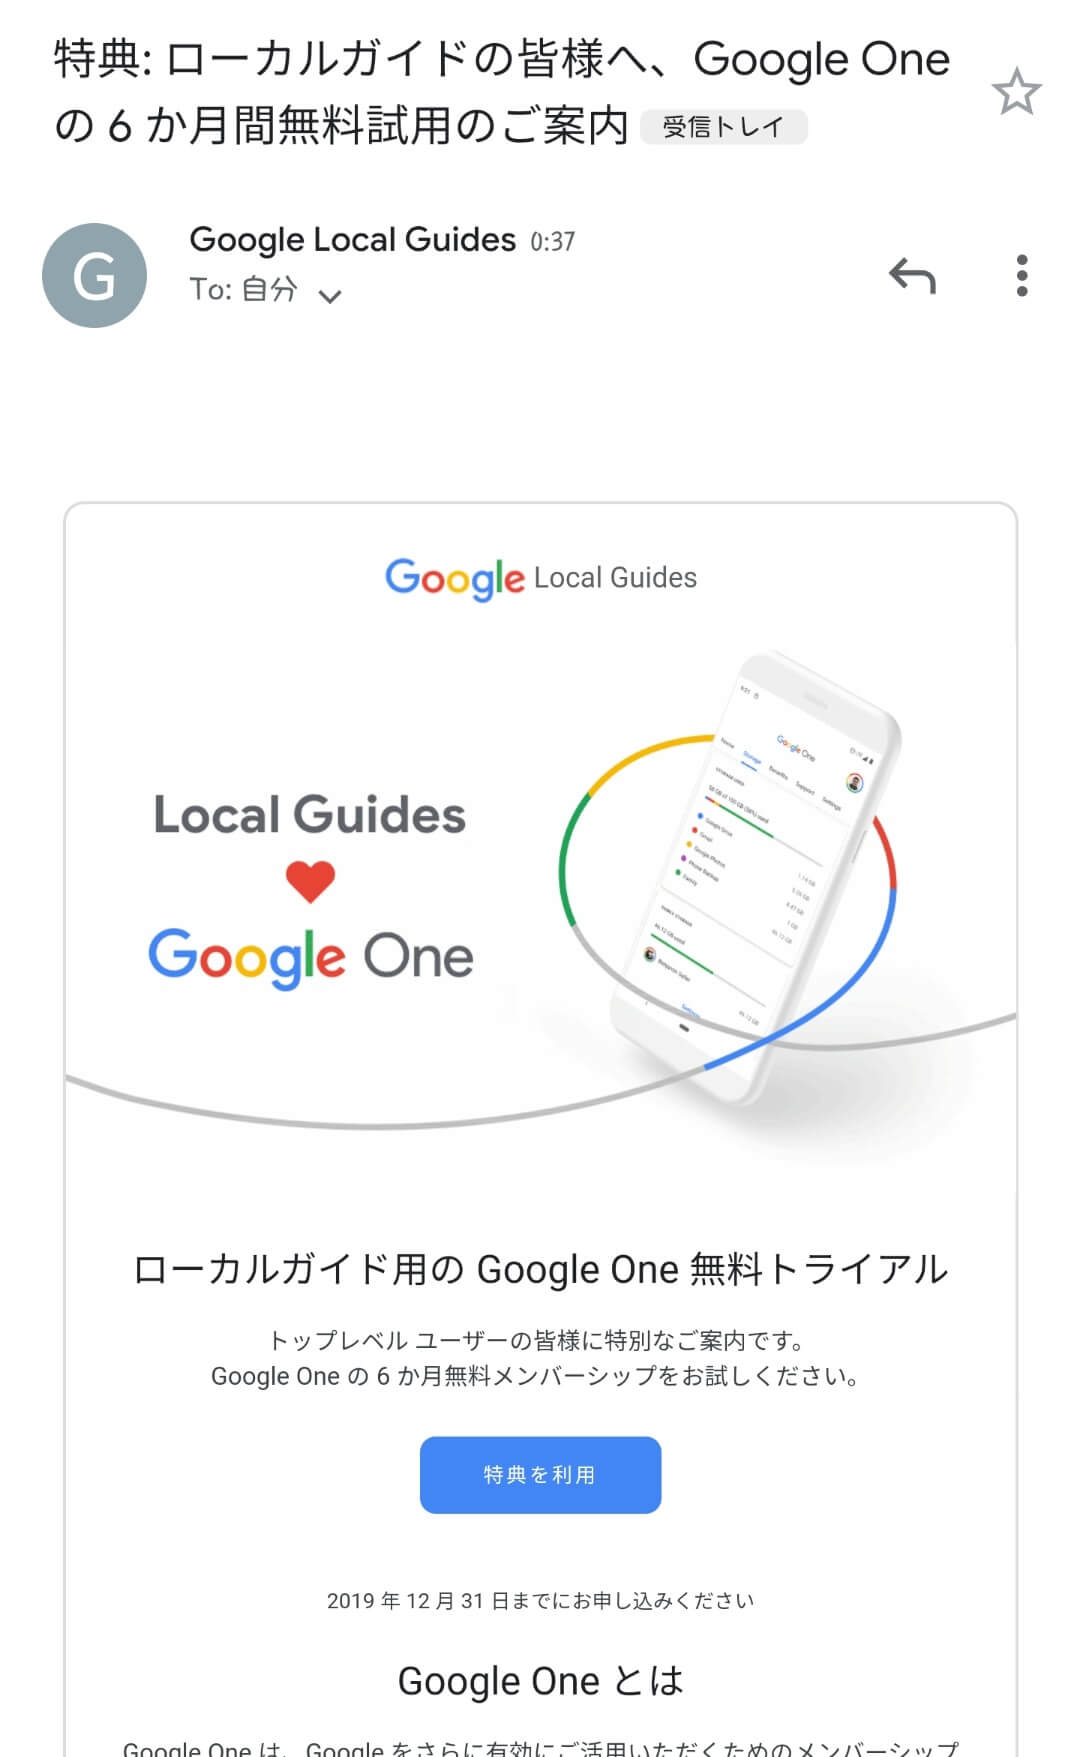 google-one-early-release-special